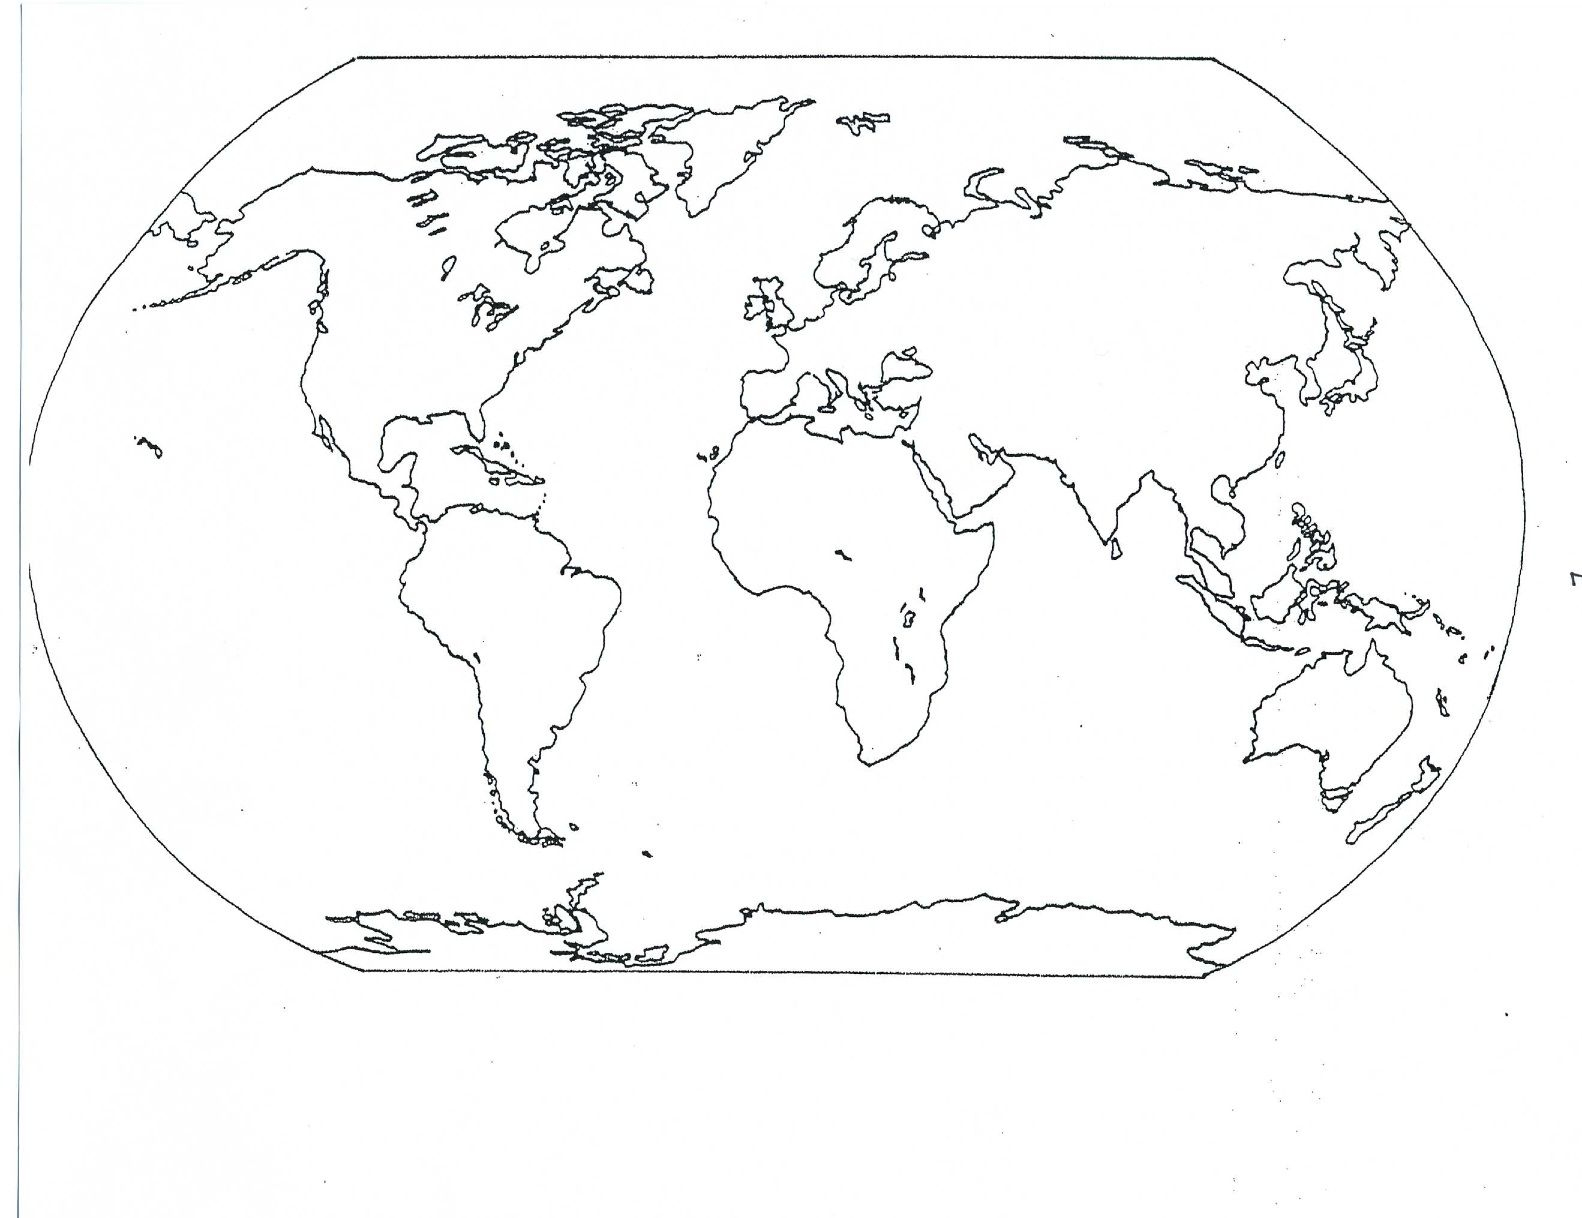 Blank Seven Continents Map | Mr.guerrieros Blog: Blank And Filled-In - Free Printable Map Of Continents And Oceans